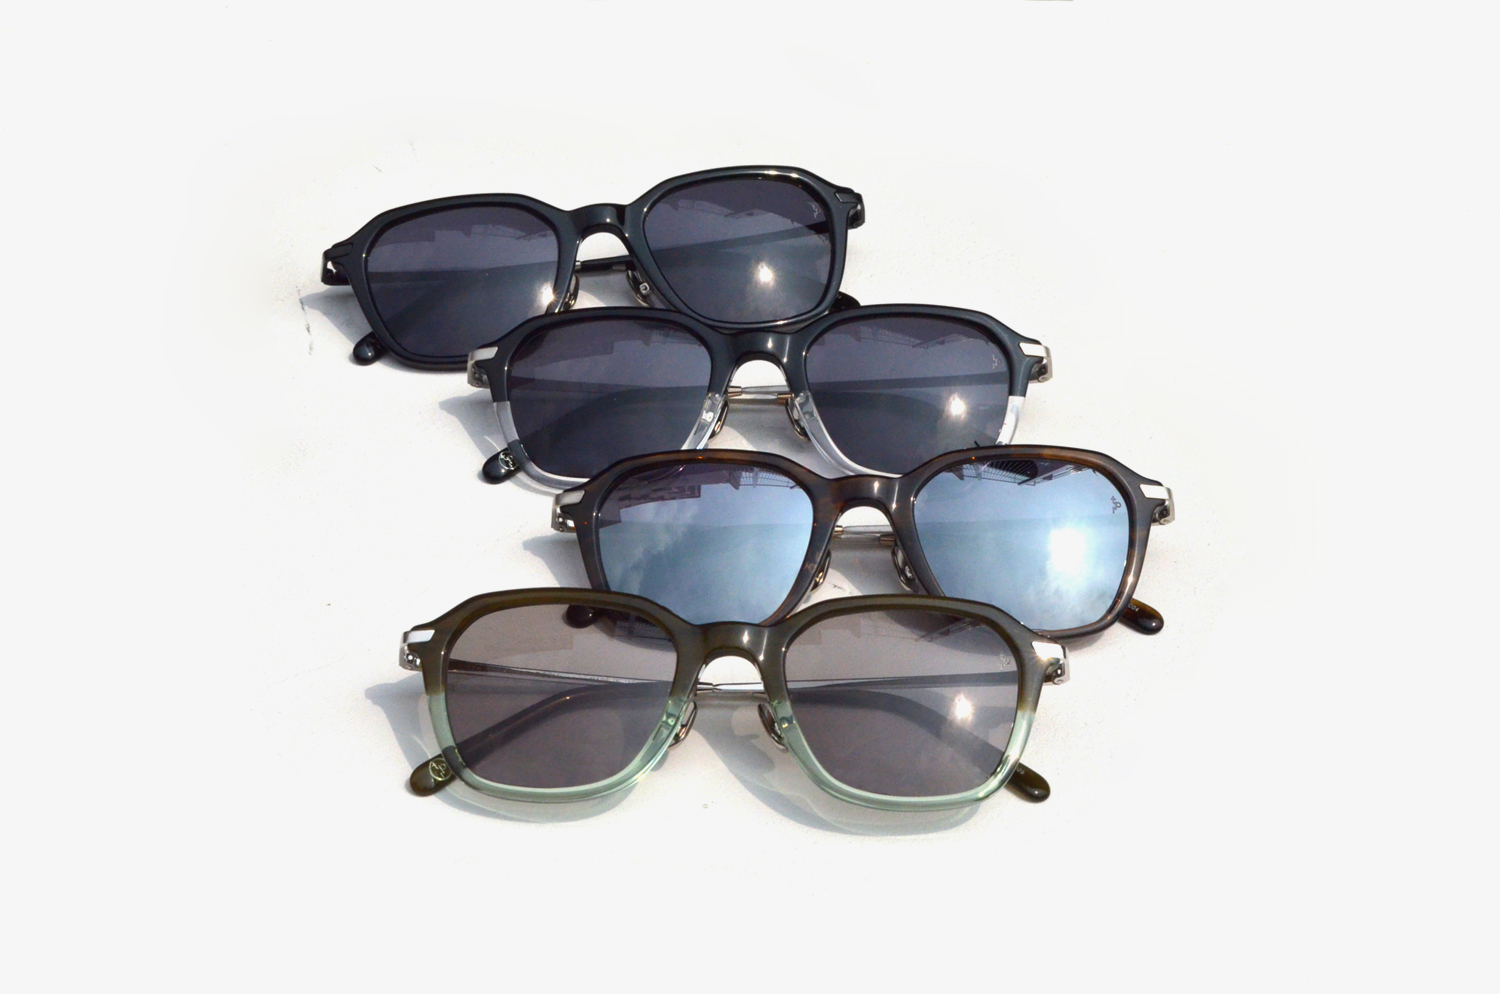 The PARKSIDE ROOM|tpr-005 new color sunglasses